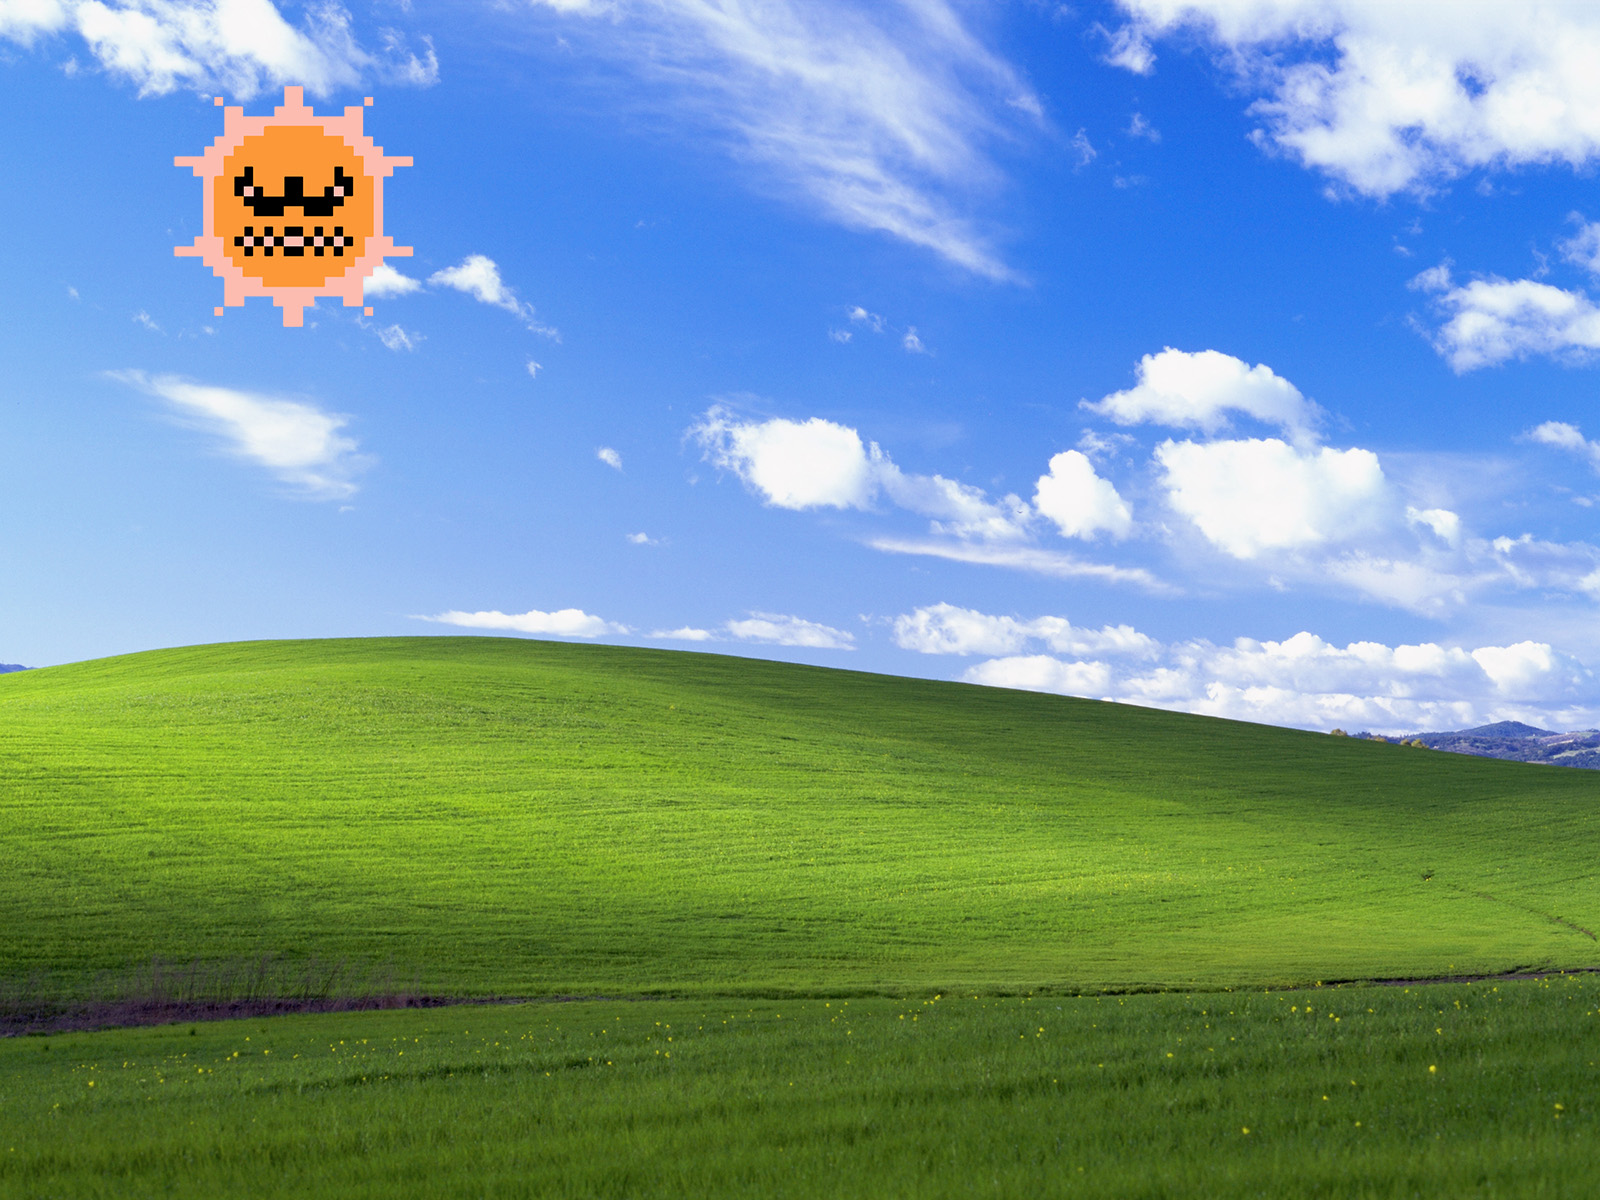 sun bliss mario bros super windows xp desktop 1600x1200 wallpaper 38944 Wallpapers windows xp bliss